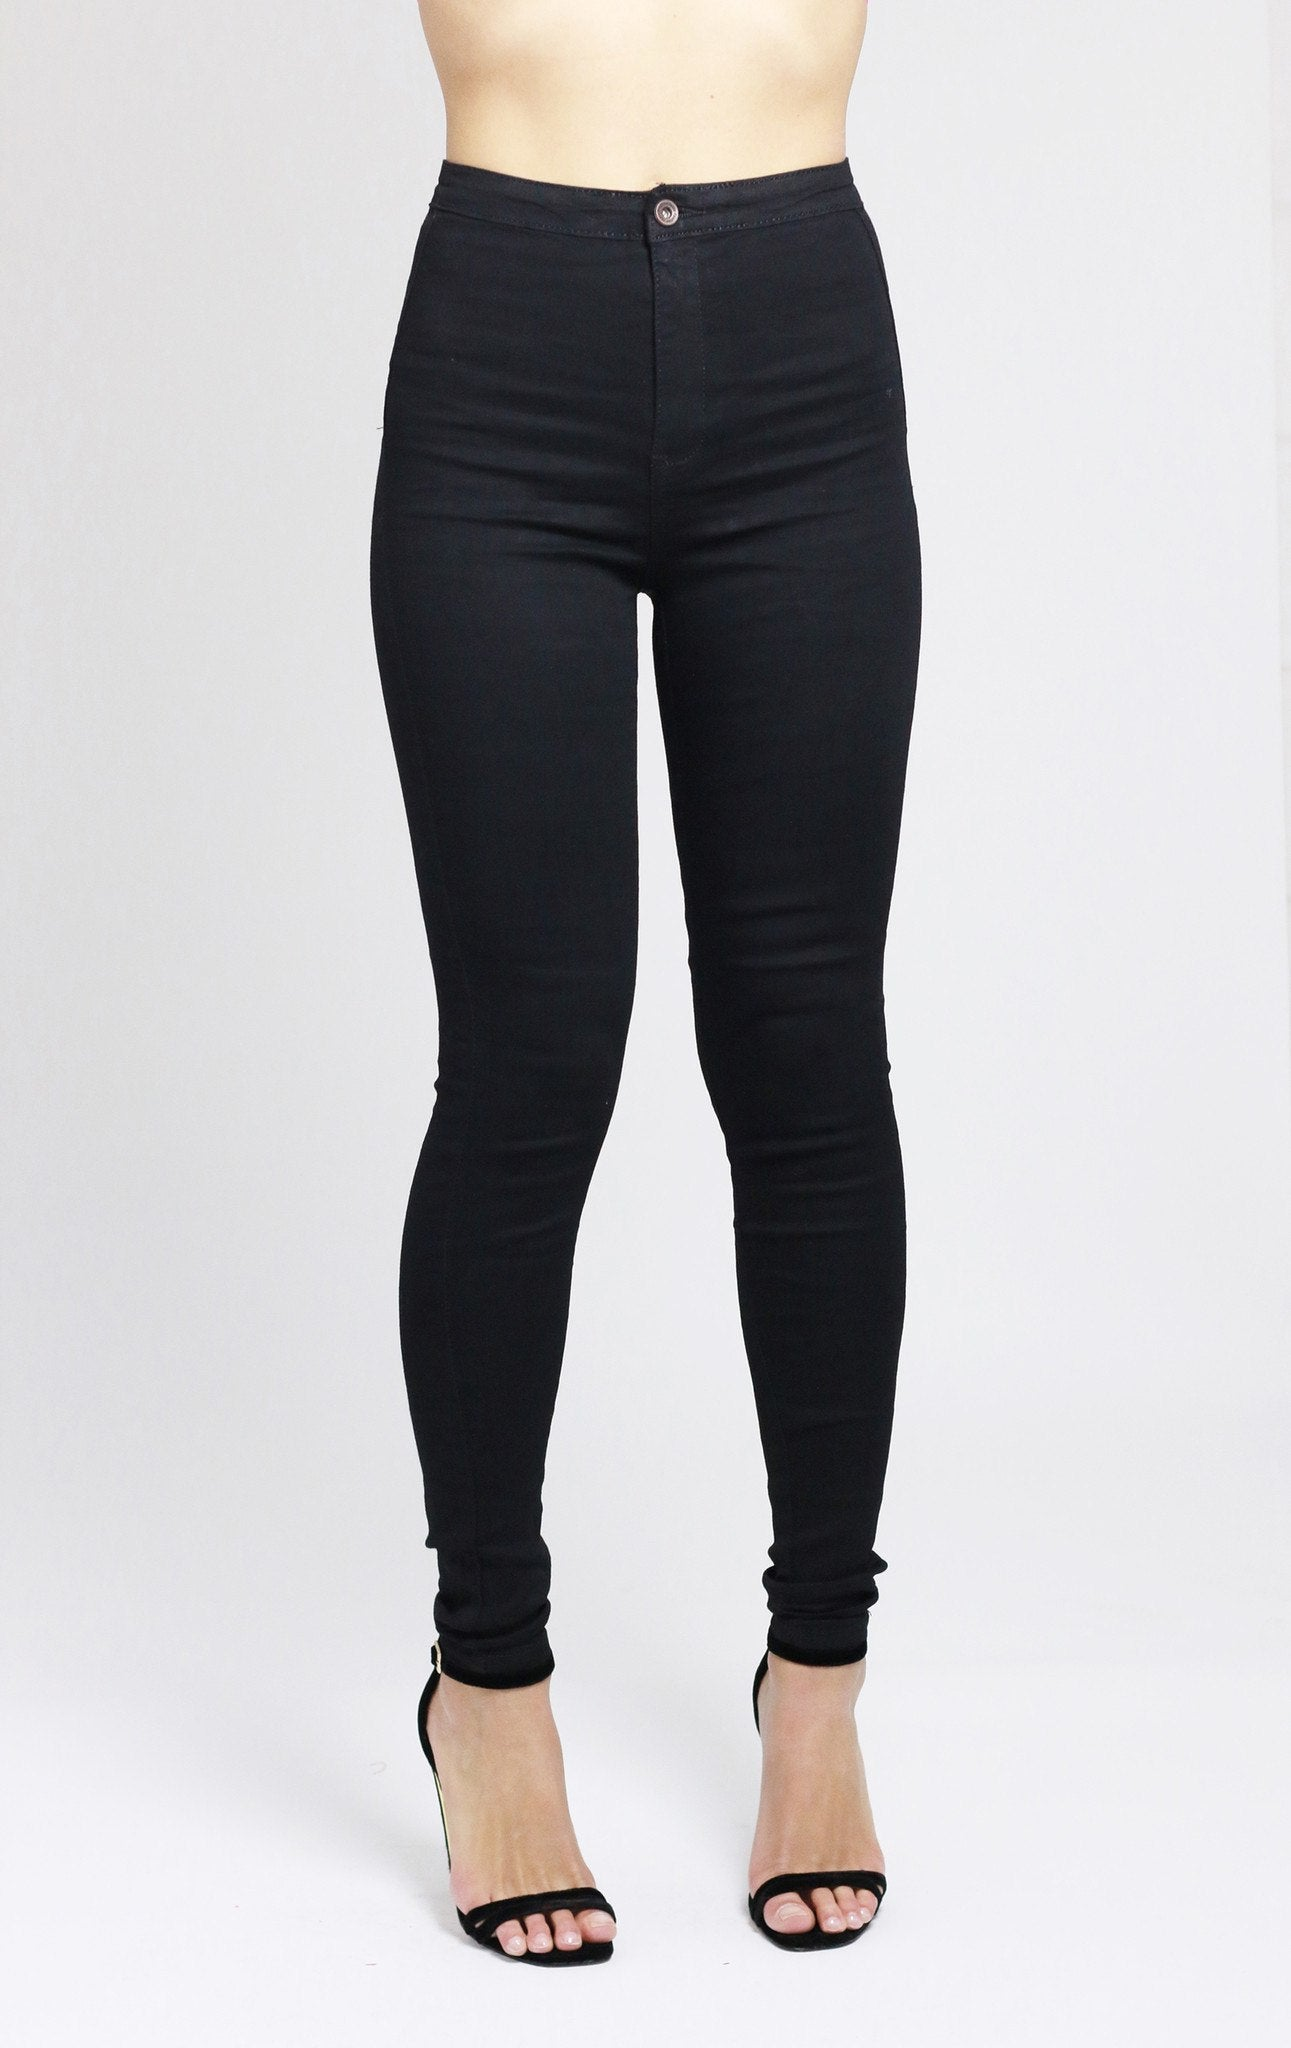 Free shipping & returns on high-waisted jeans for women at sportworlds.gq Shop for high waisted jeans by leg style, wash, waist size, and more from top brands. Free shipping and returns.